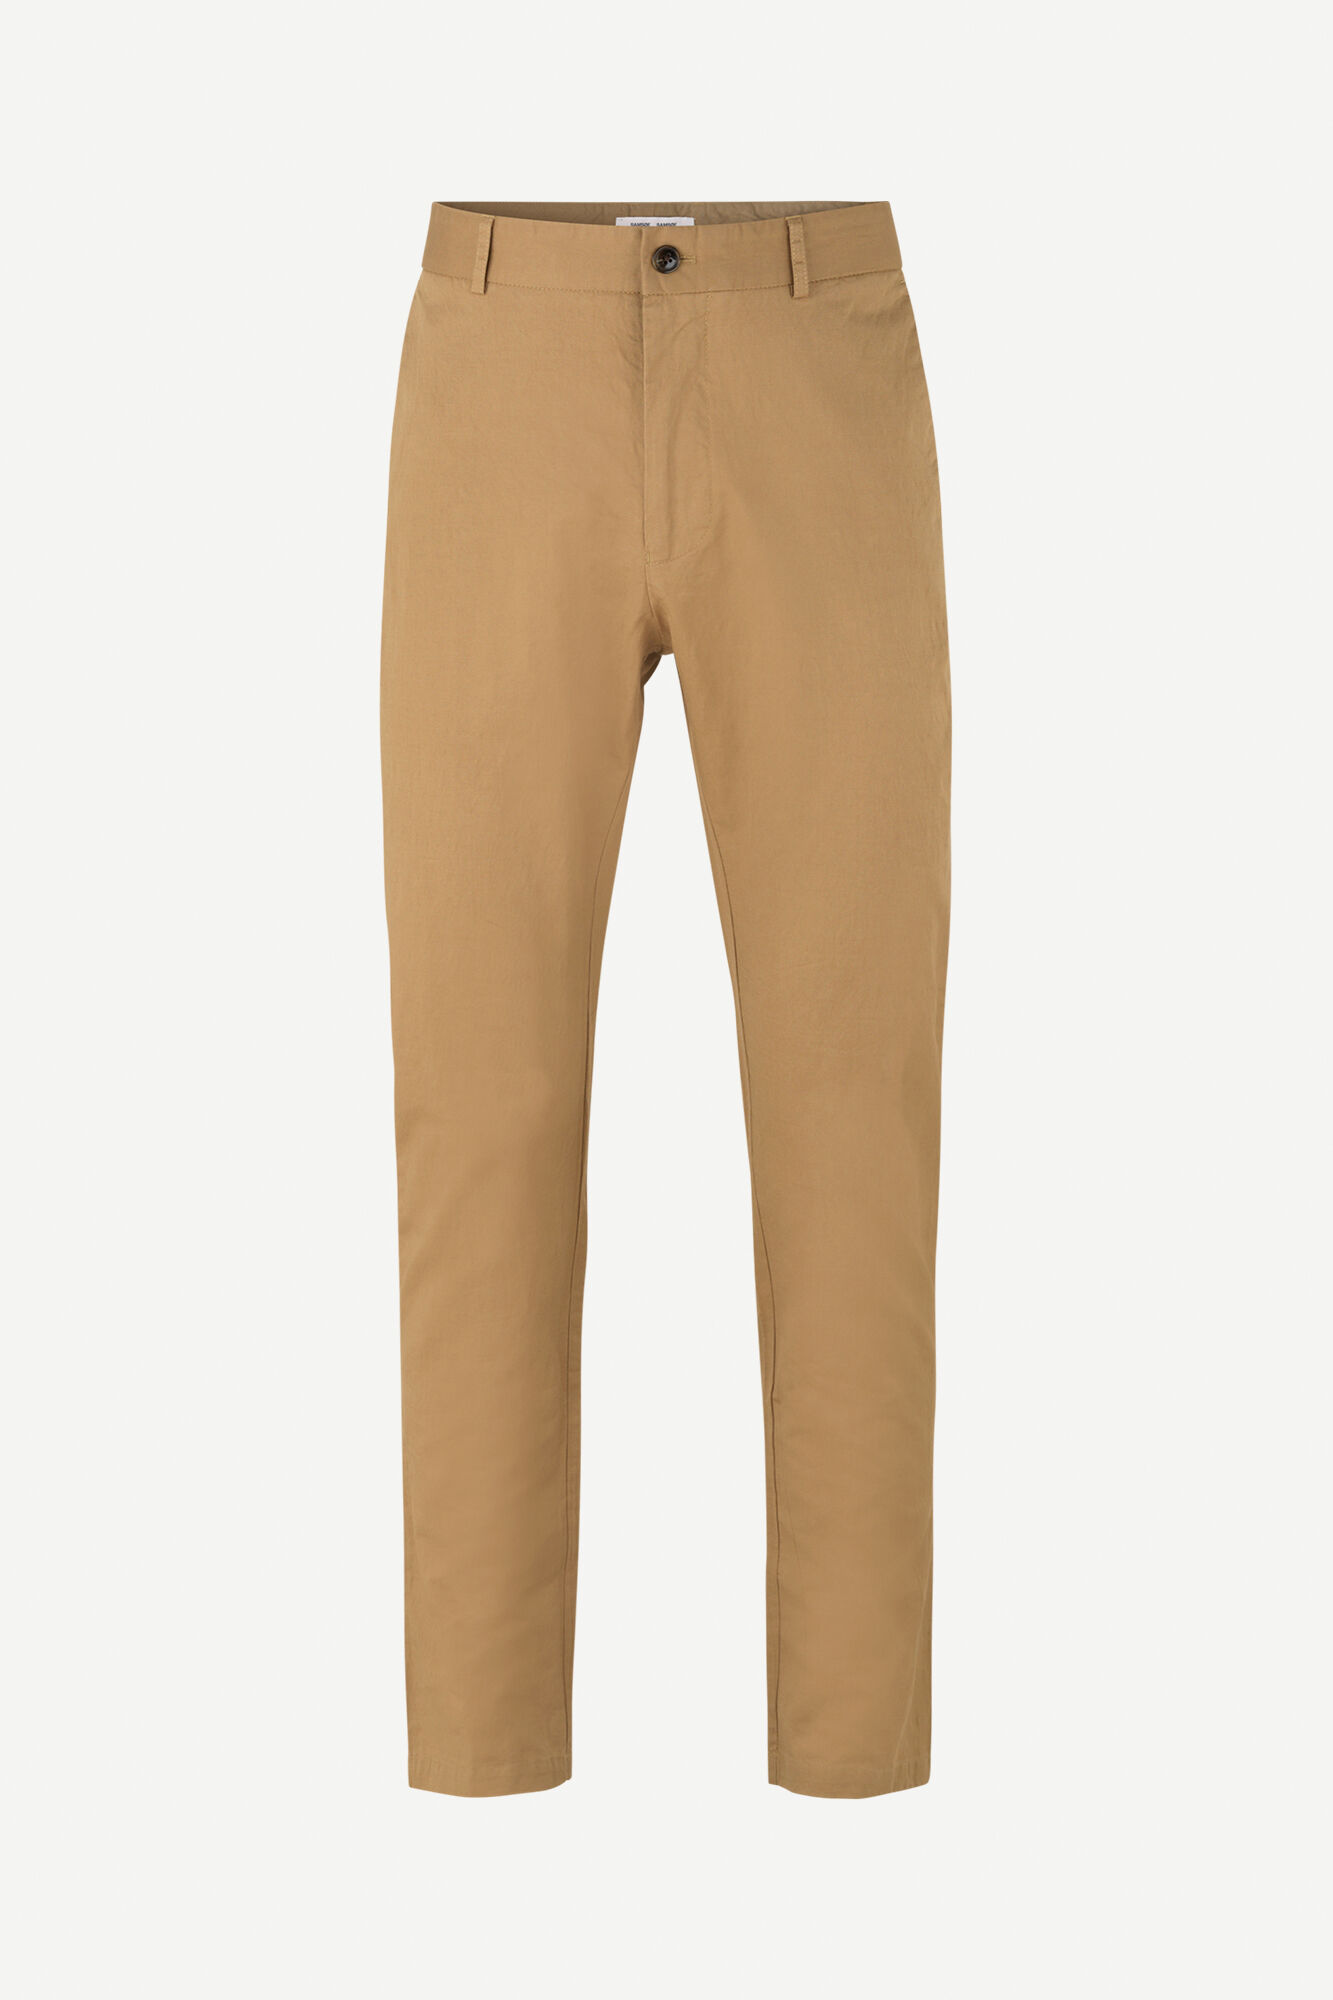 Andy x trousers 11494, ANTIQUE BRONZE